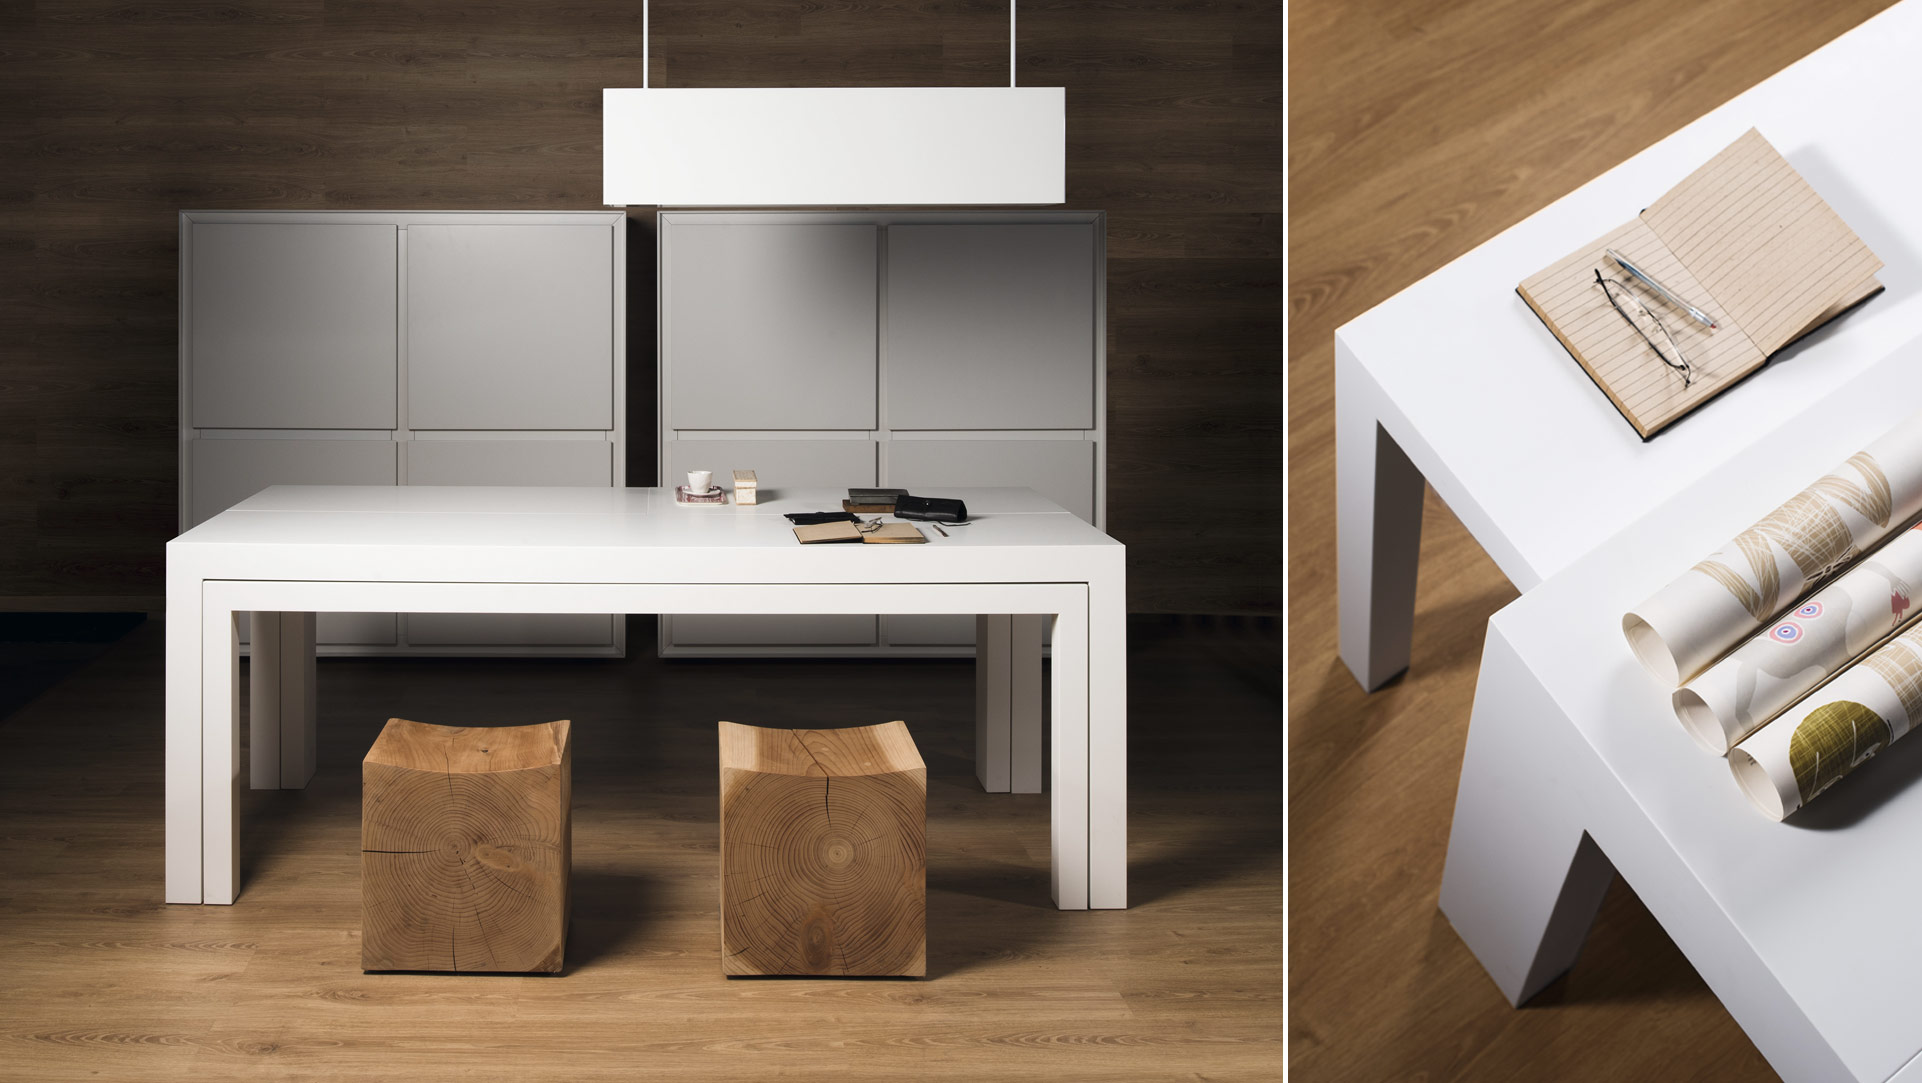 OFF KITCHEN: cucina a scomparsa freestanding per ufficio - Inspired-Lab_OFF_03b